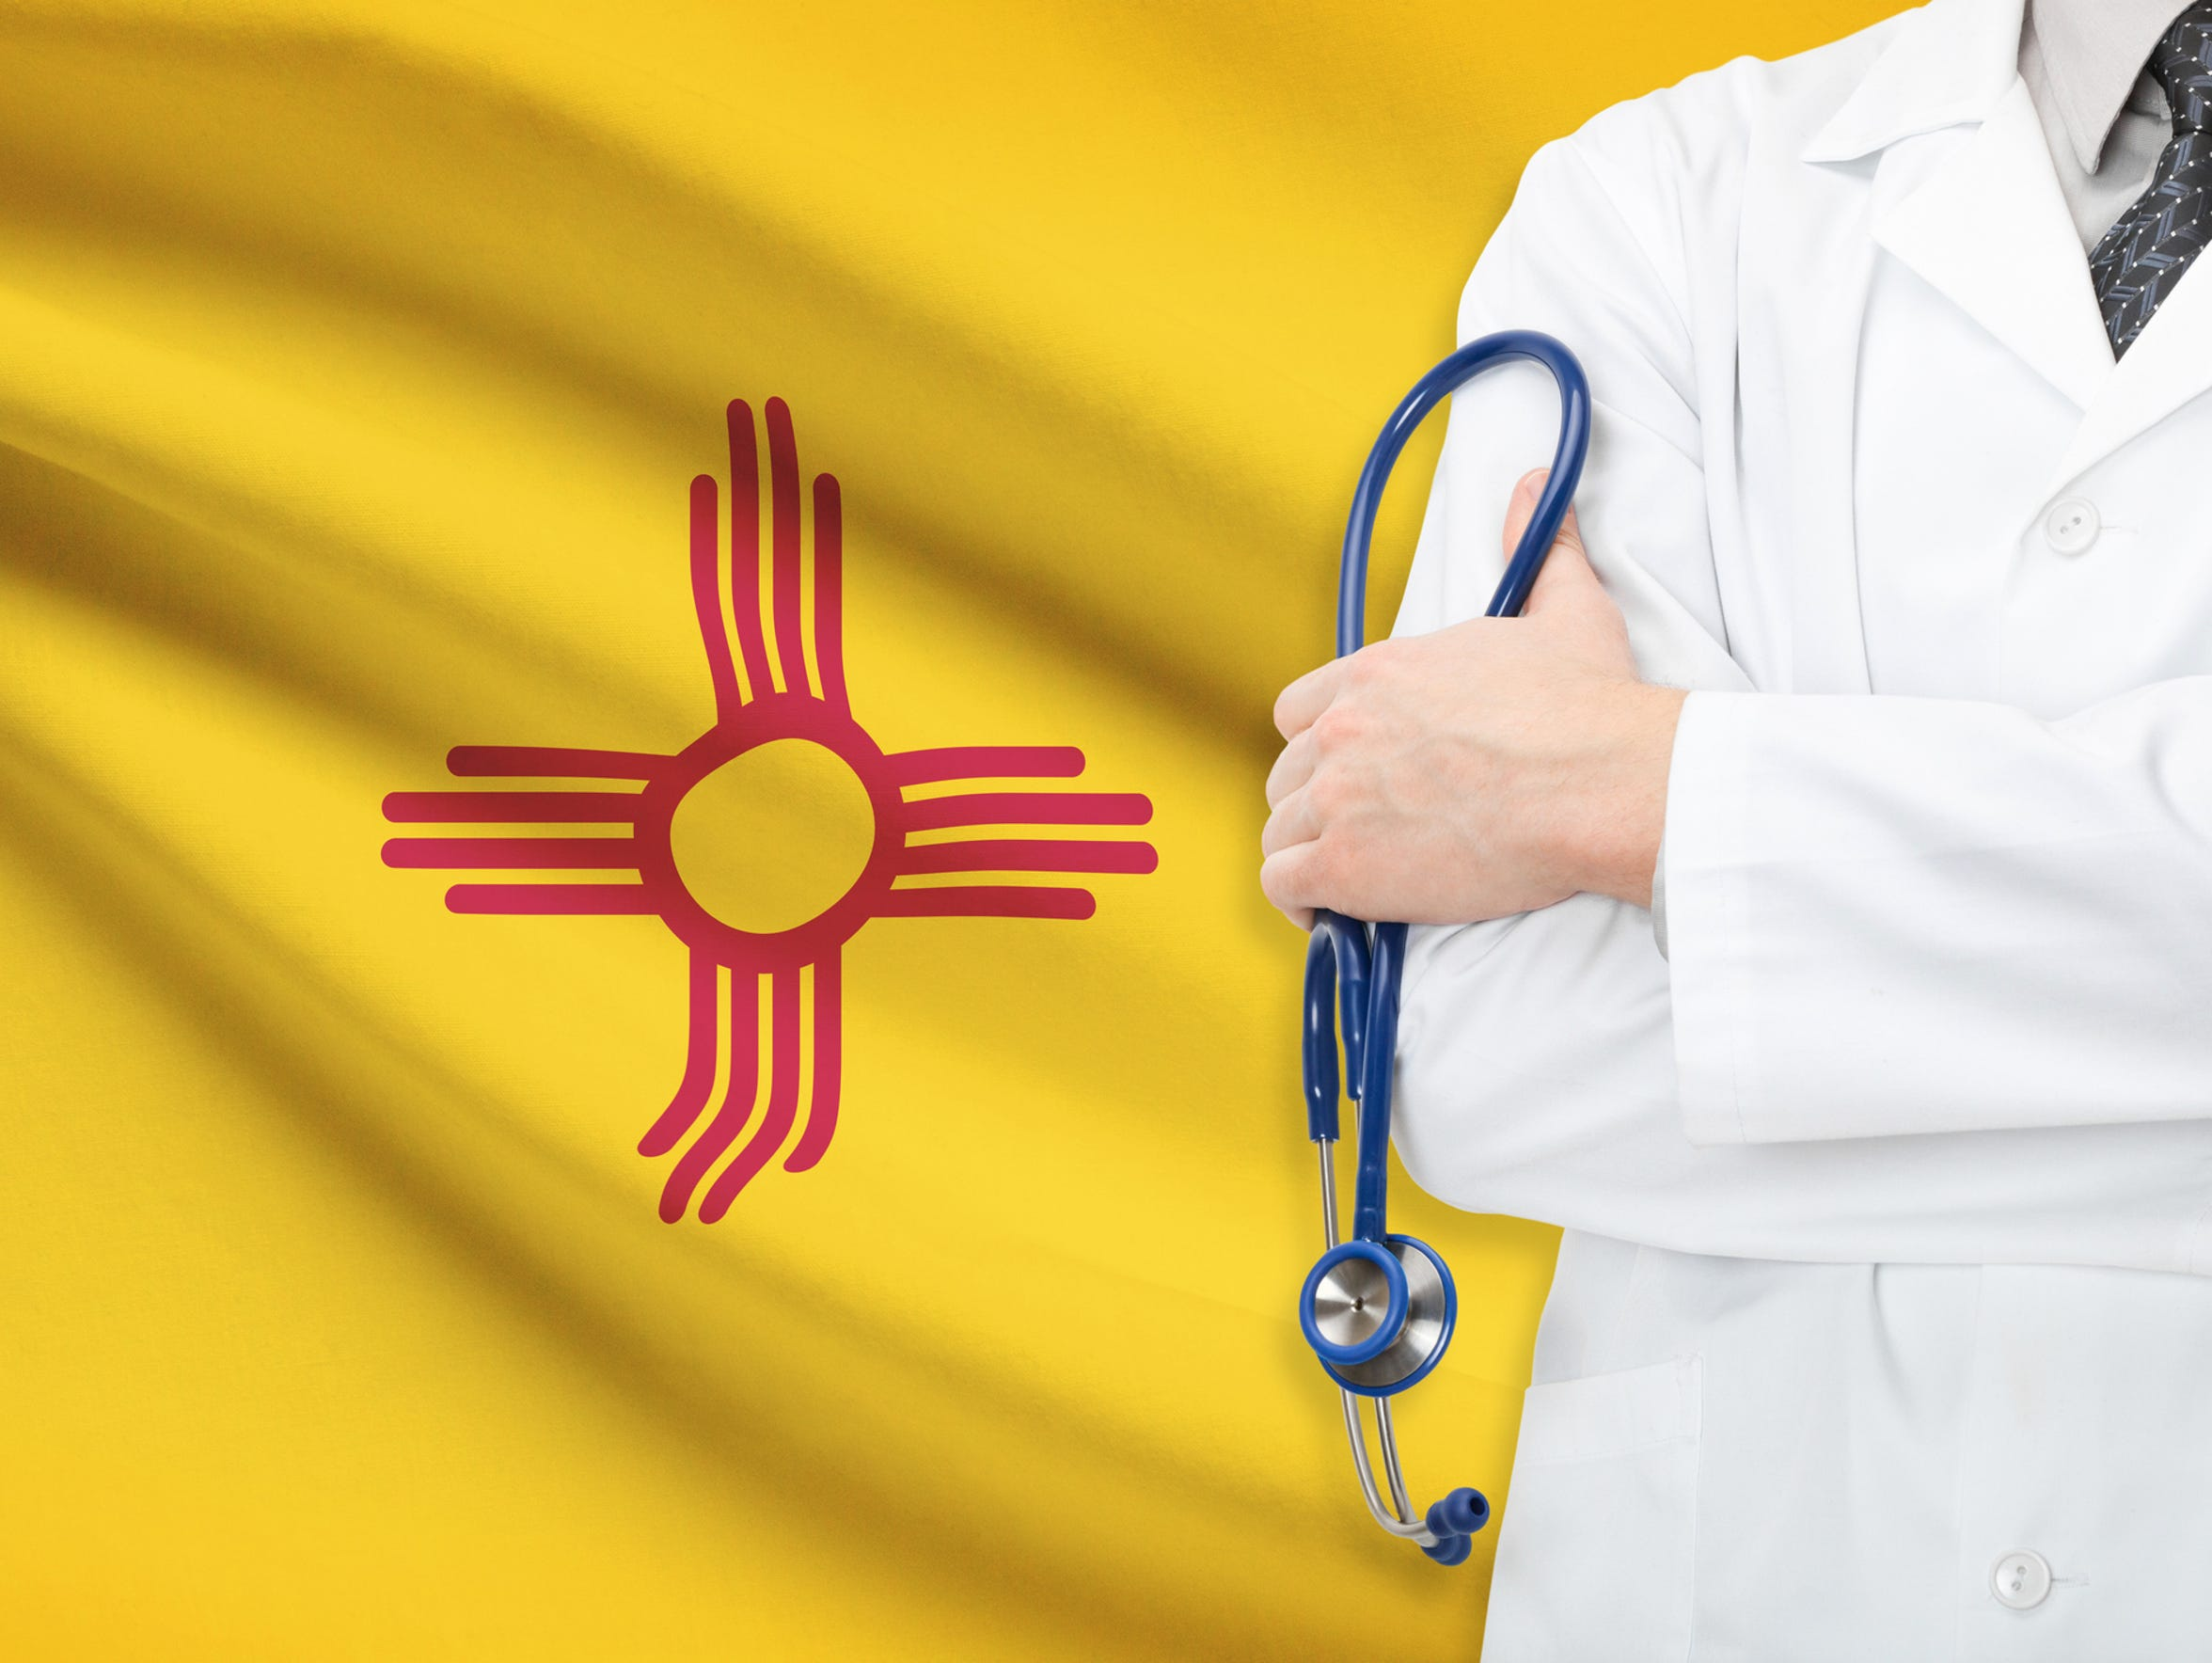 The federal Health Resources & Services Administration considers Doña Ana County a Health Professional Shortage Area in the category of behavioral health. A 0-to-25 scale takes into account several factors related to patients accessing care, including psychiatrist-to-resident ratios in an area. A rating of 25 is the worst. Doña Ana County scored a 21.